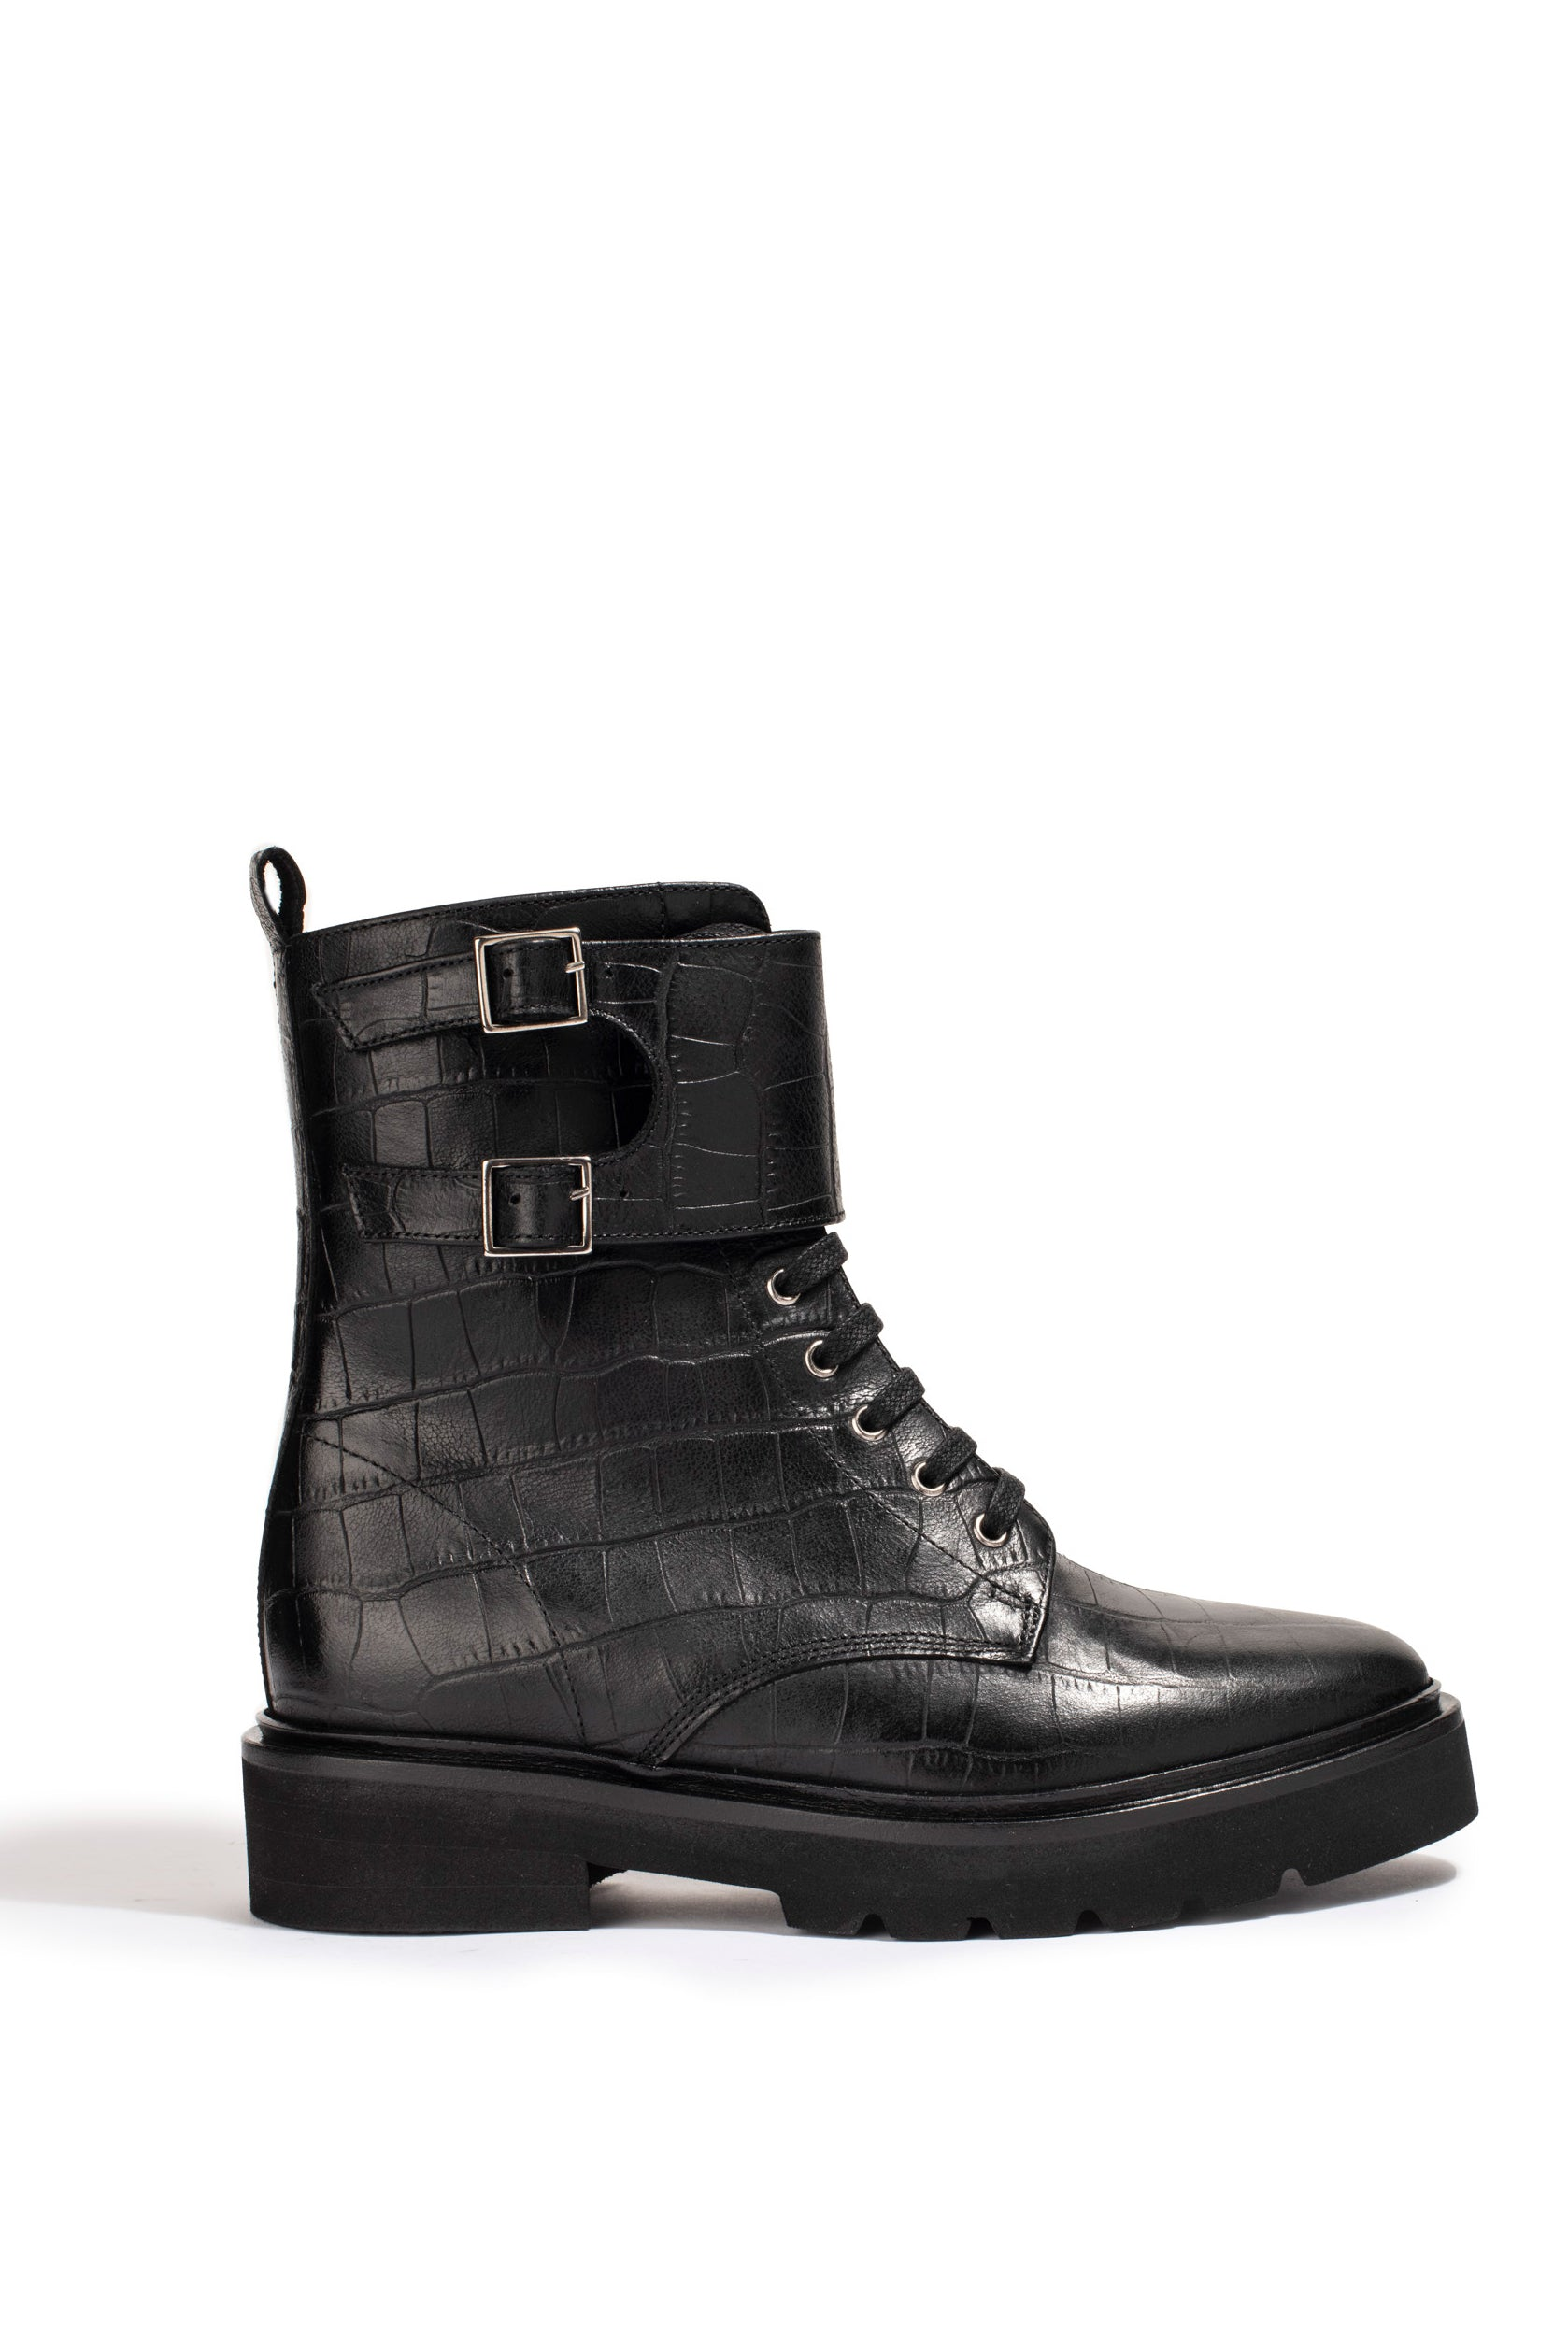 Bottines Lottie Croco Noir - Anaki Paris